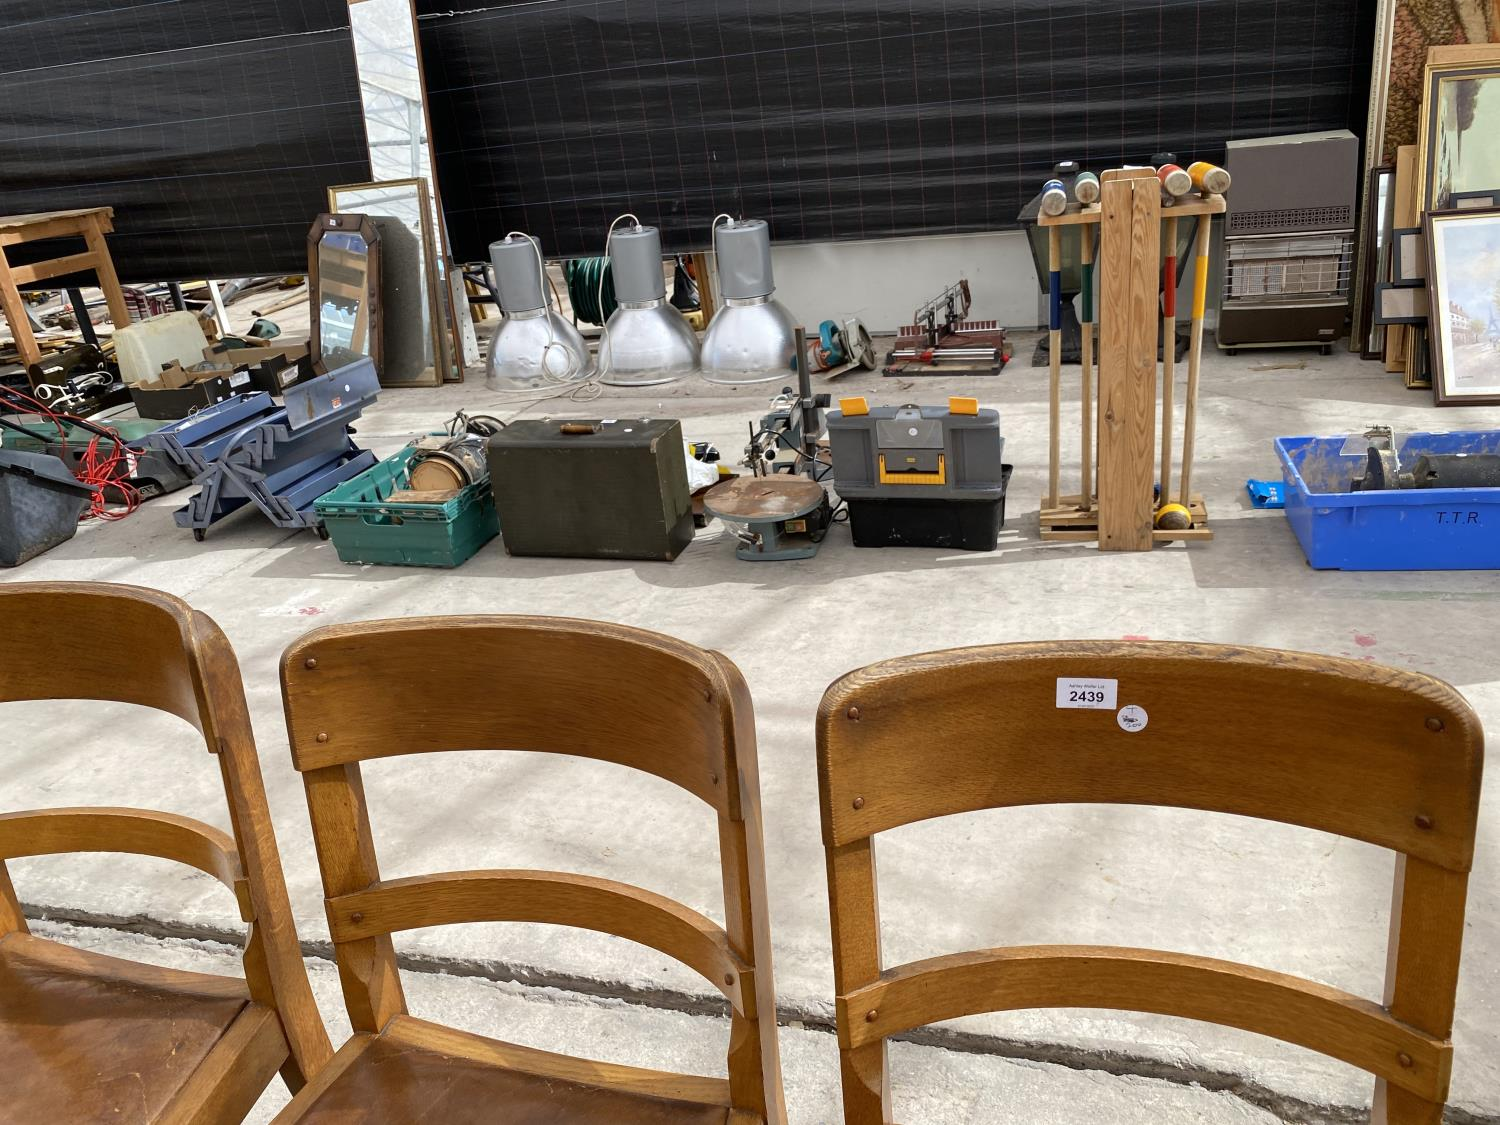 A SET OF MID 20TH CENTURY OAK DINING CHAIRS - Image 2 of 5